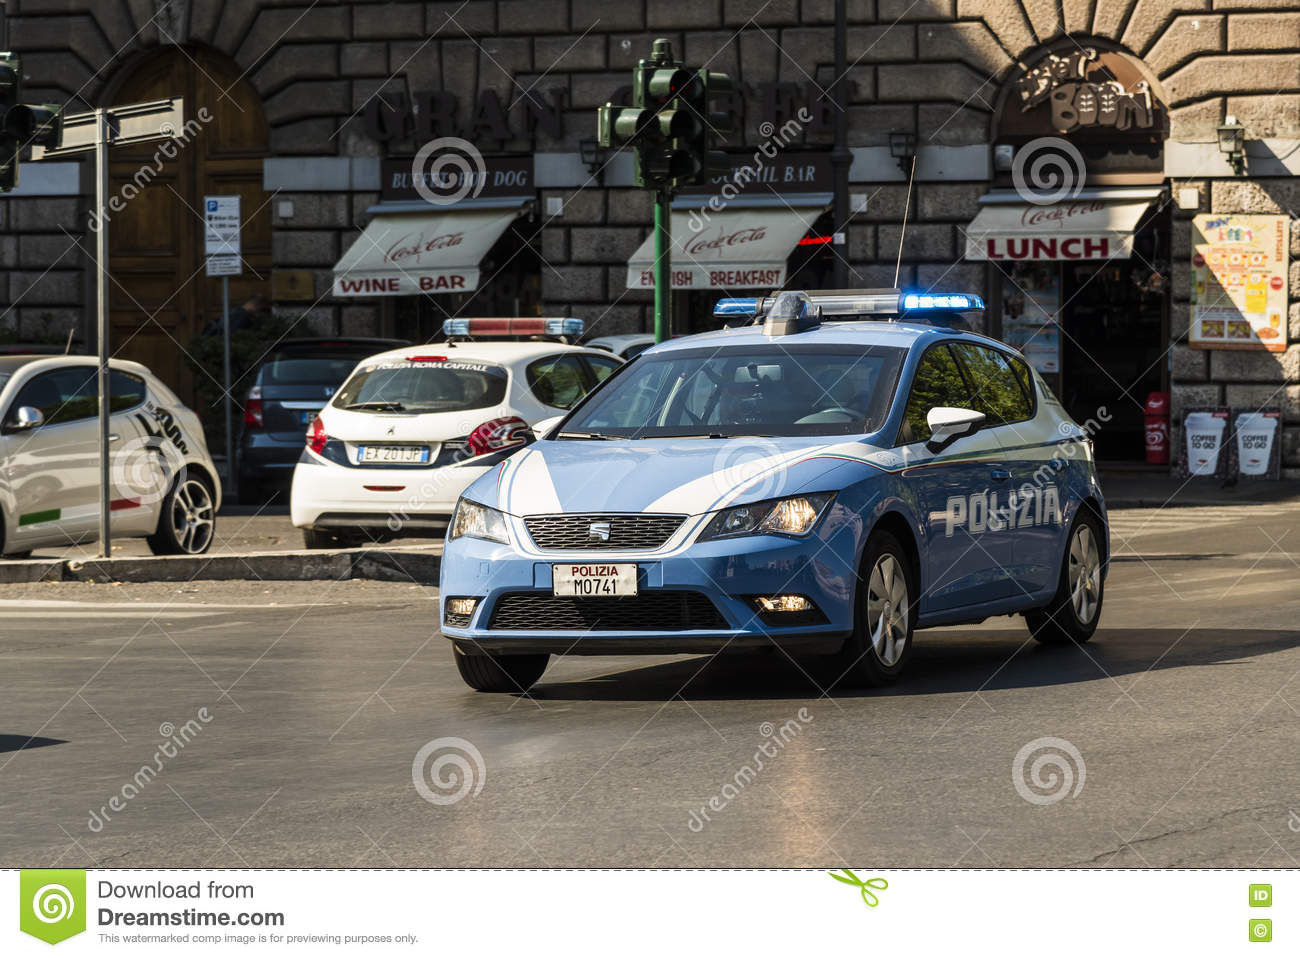 Police car at emergency rome editorial photography image of italian police car with flashing lights at emergency in rome italy aloadofball Images